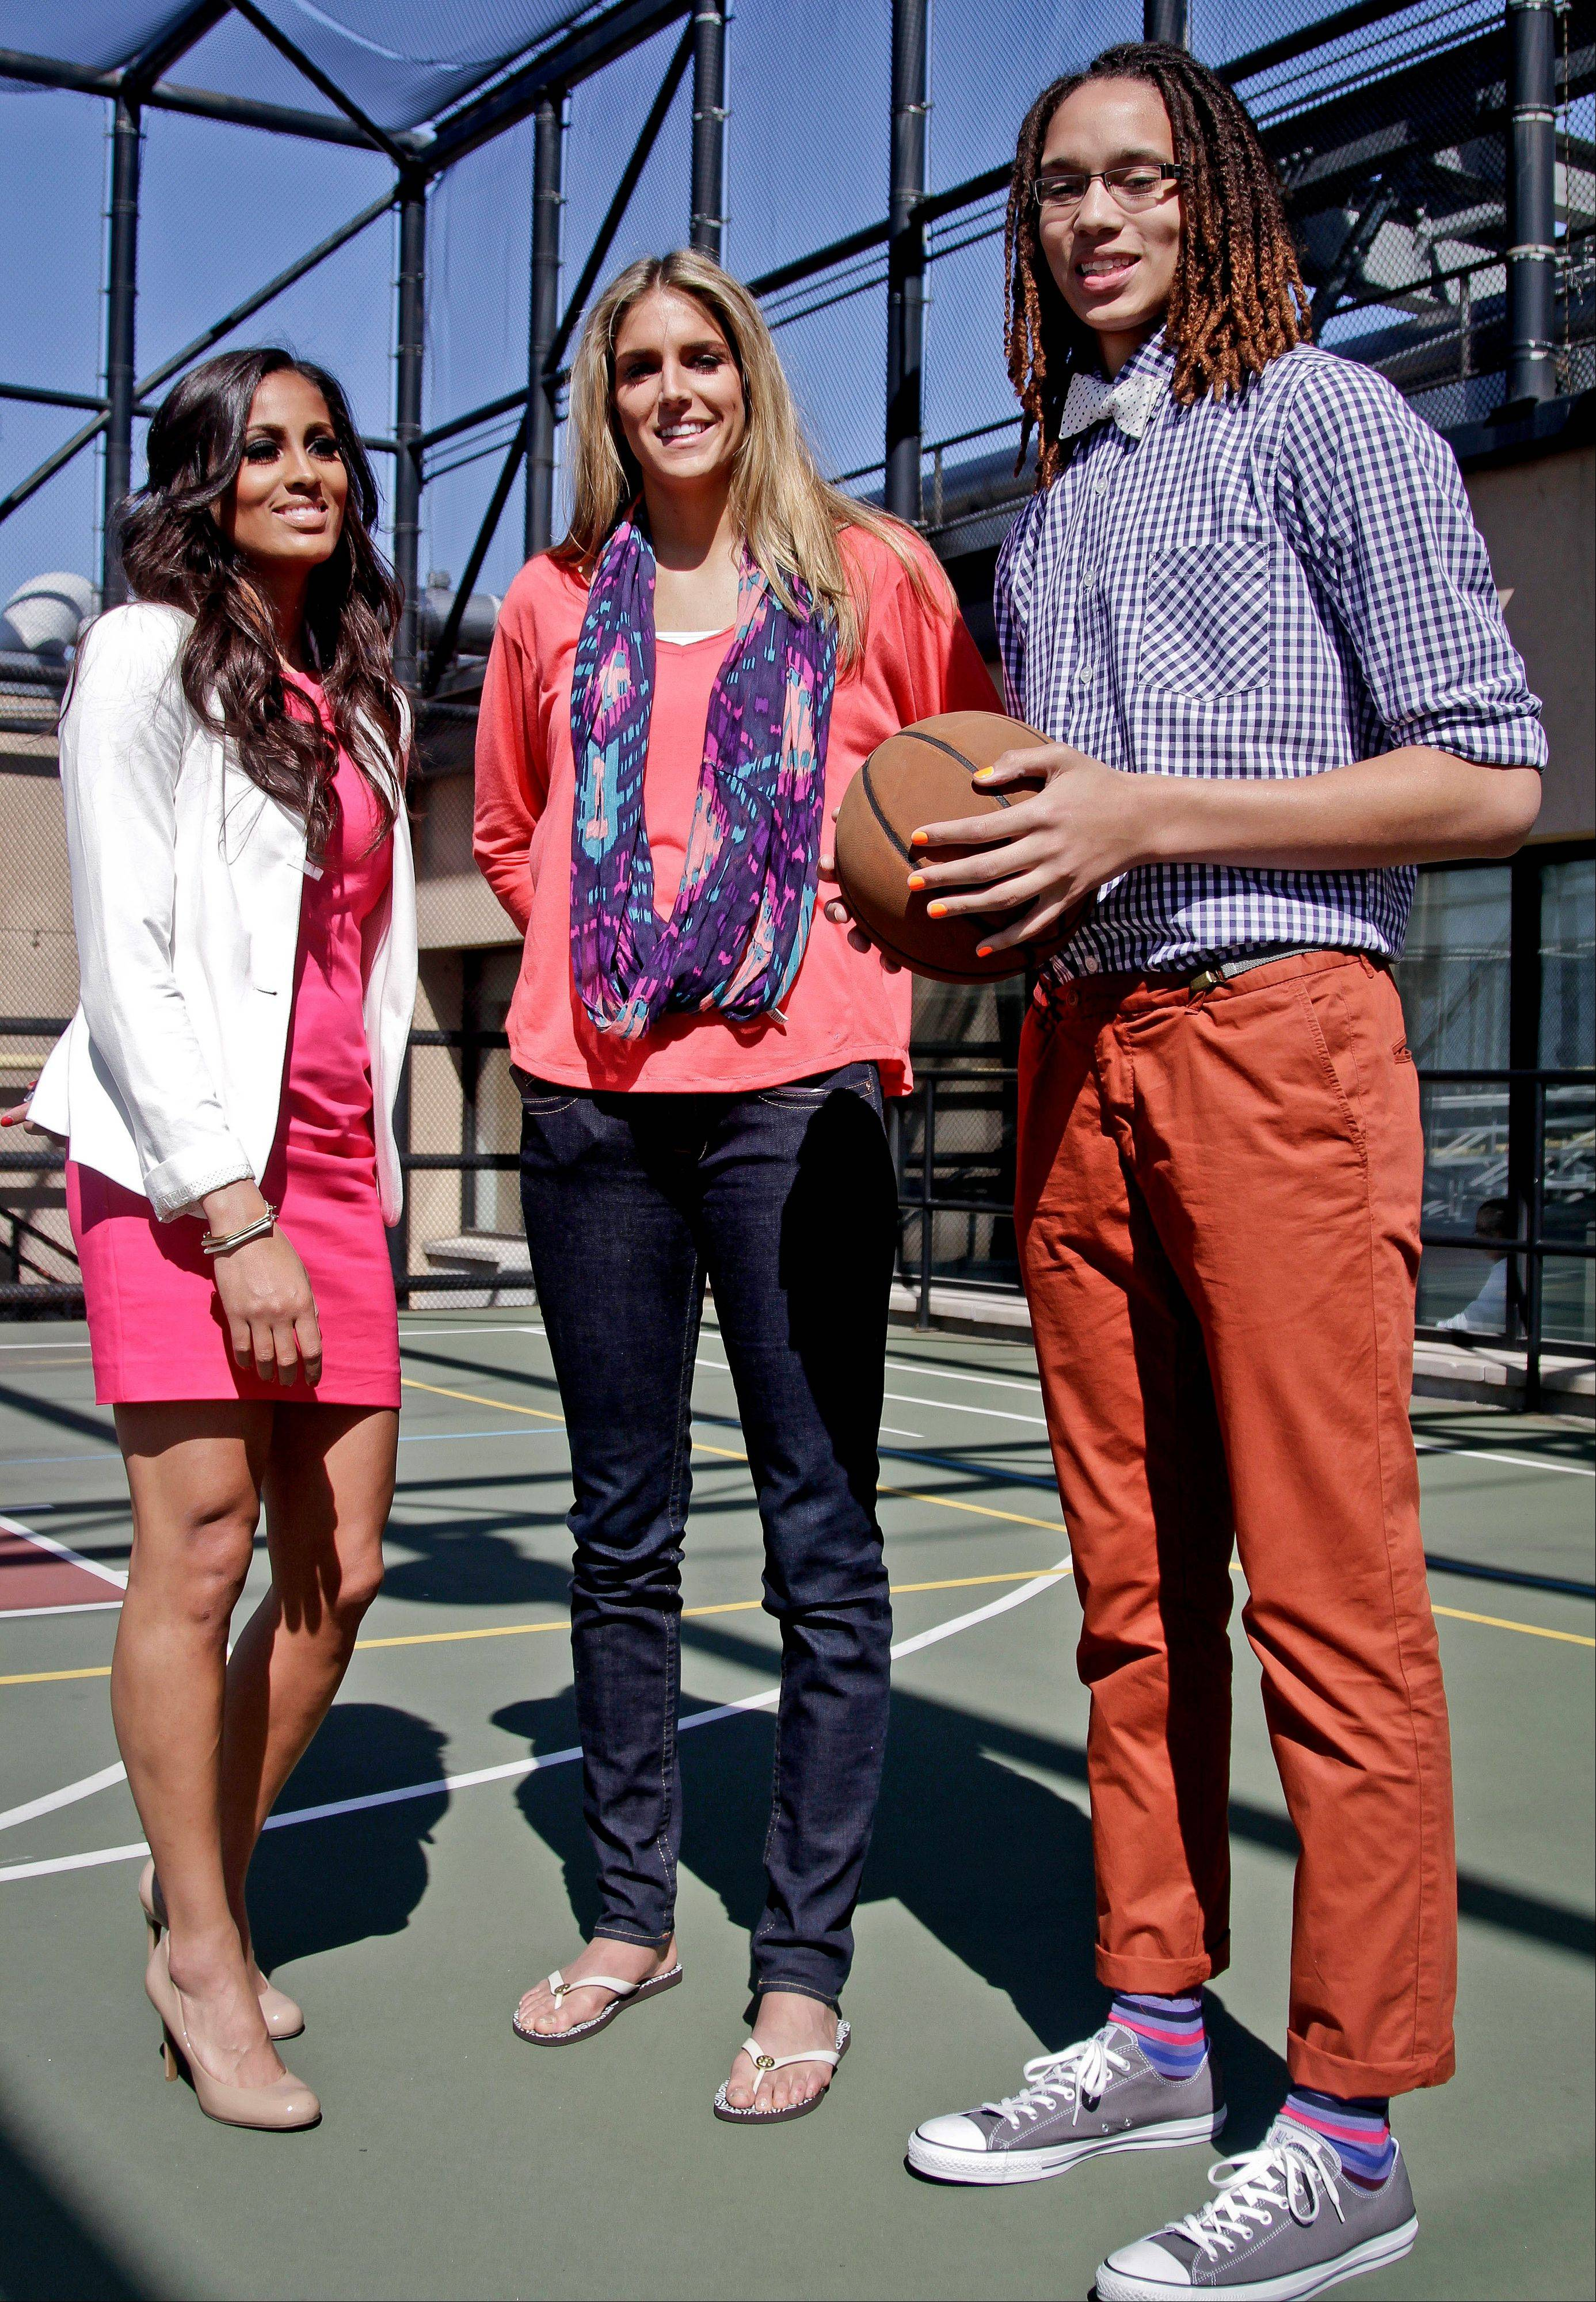 Associated PressThe WNBA is touting Skylar Diggins, left, Elena Delle Donne and Brittney Griner as the '3 to See' this season. Griner, Delle Donne and Diggins were drafted 1-2-3 in April.